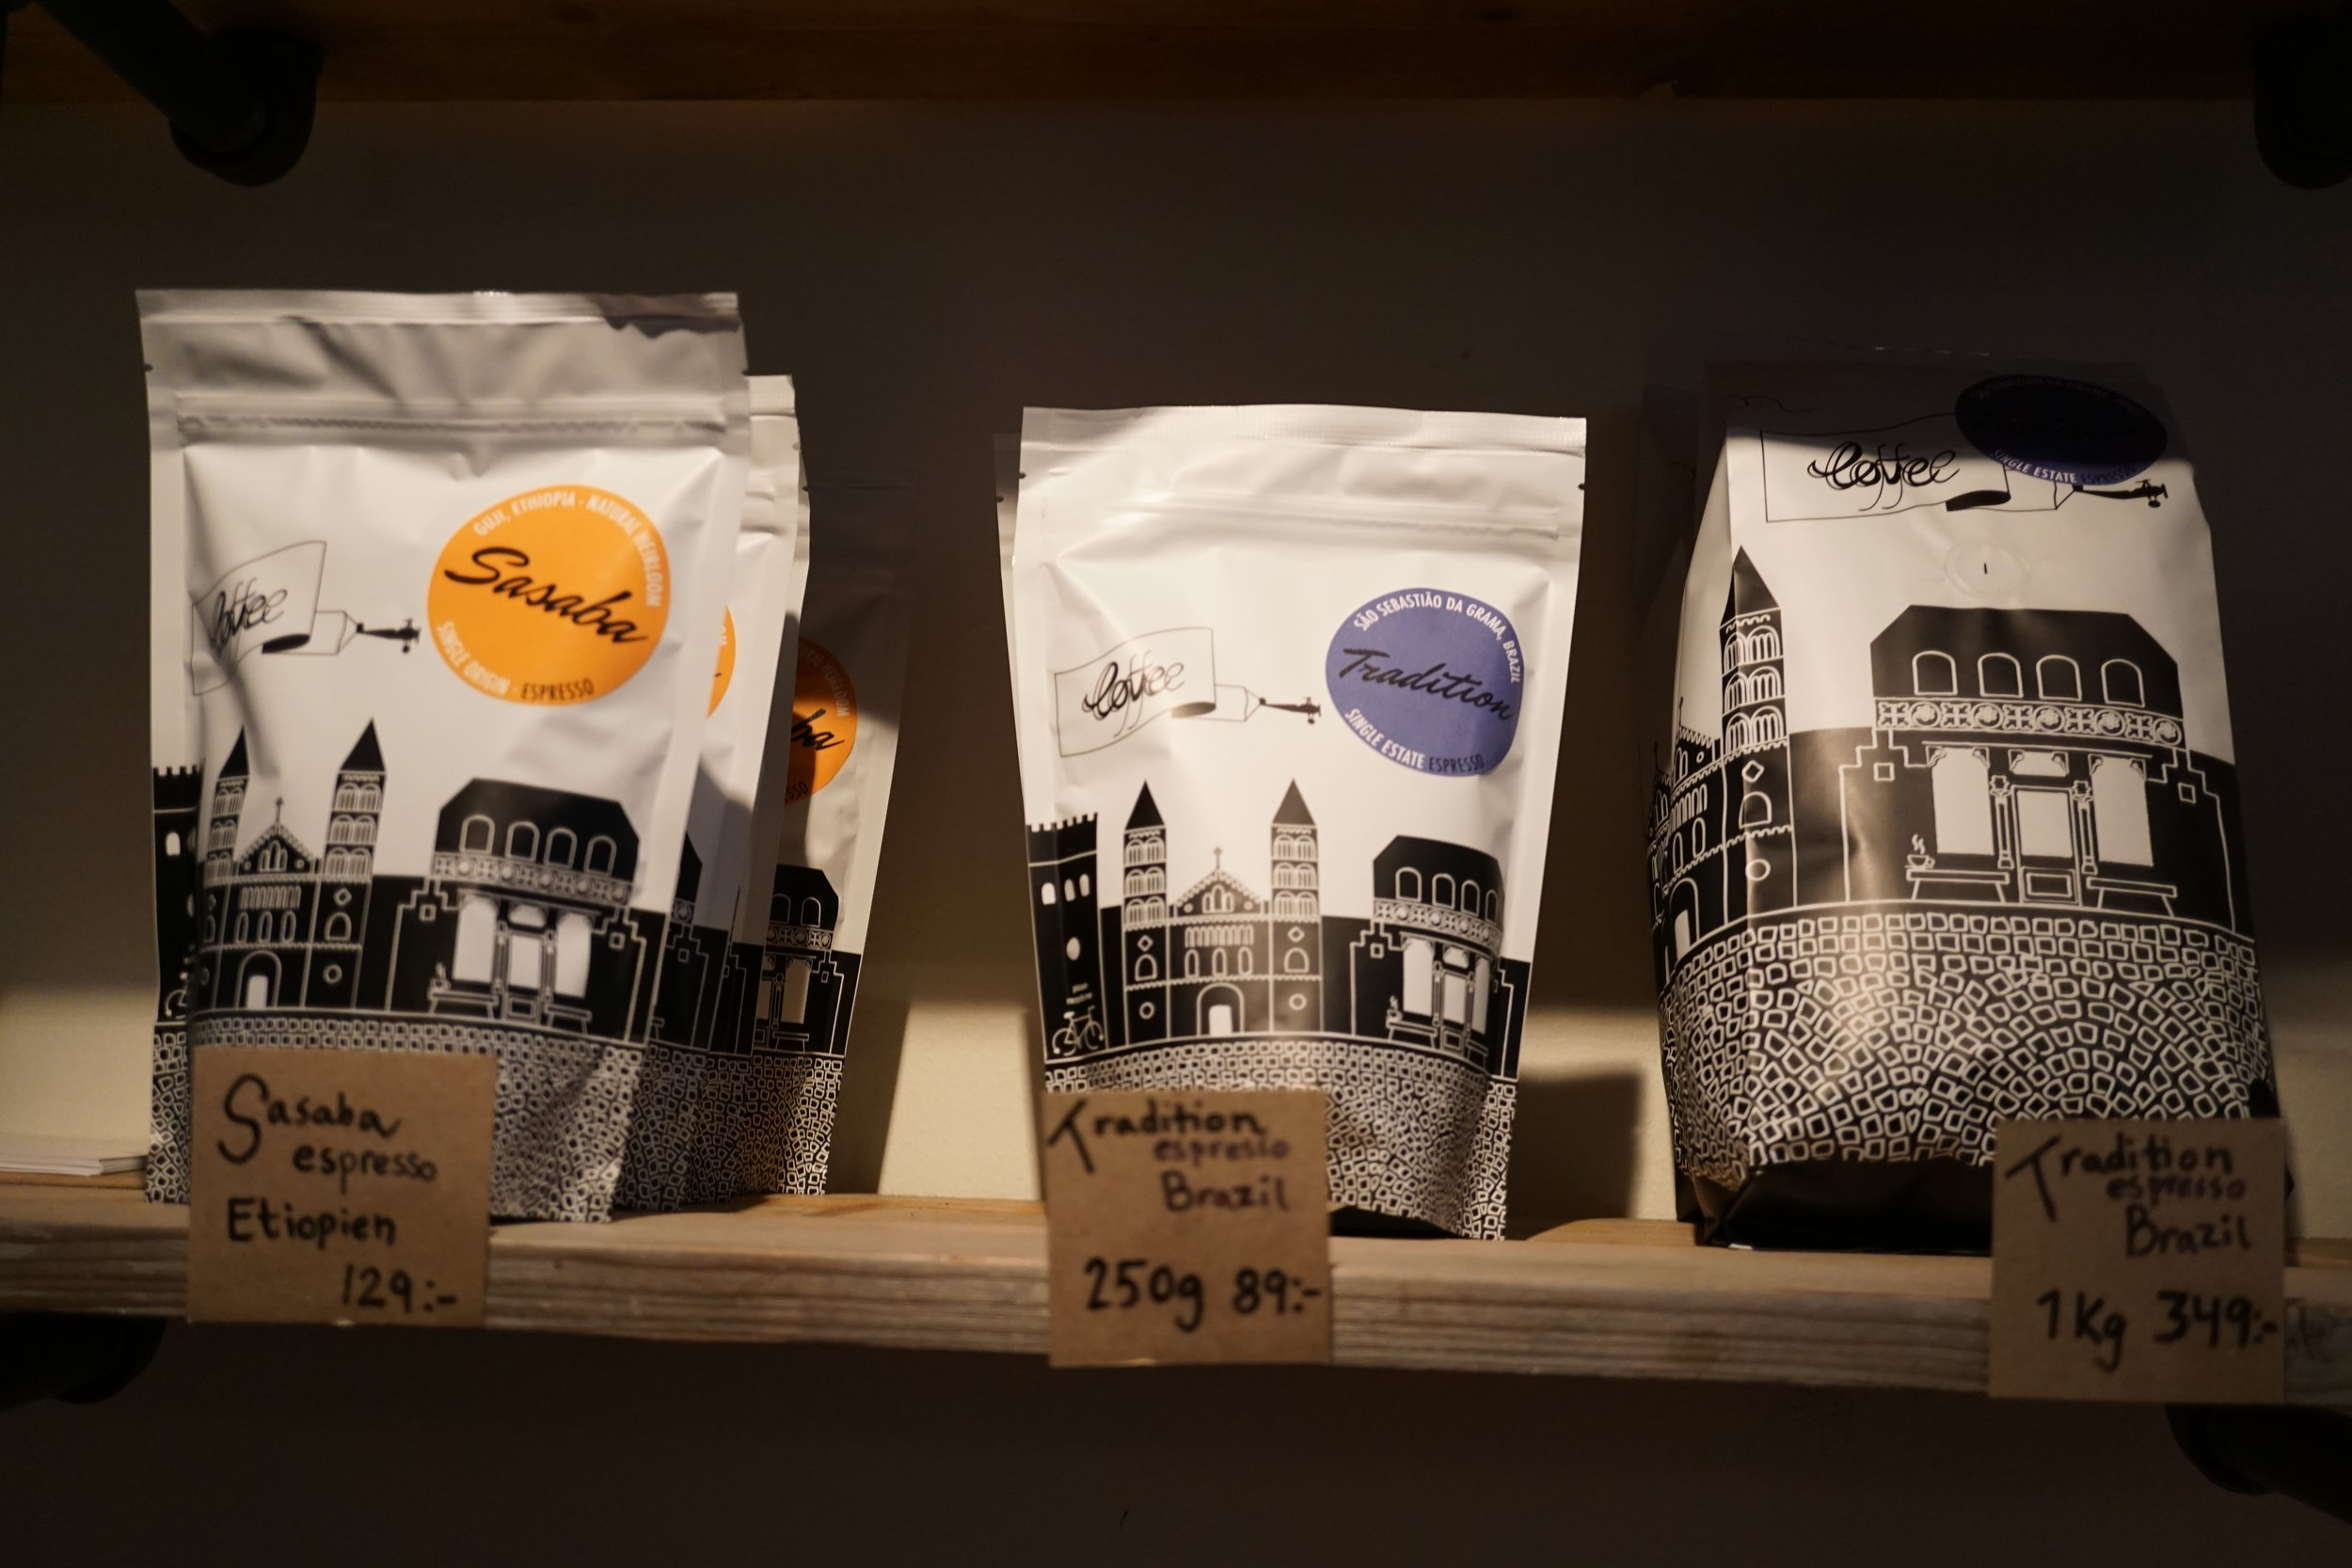 Love Coffee Roasters - There's quite a trend for independent specialty coffee roasters in Sweden. Love Coffee Roasters is based in Lund, Sweden and the business started out with a passion and love for specialty coffee. Delivering their intense knowledge for the bean from different parts of the world. Love Coffee roasters